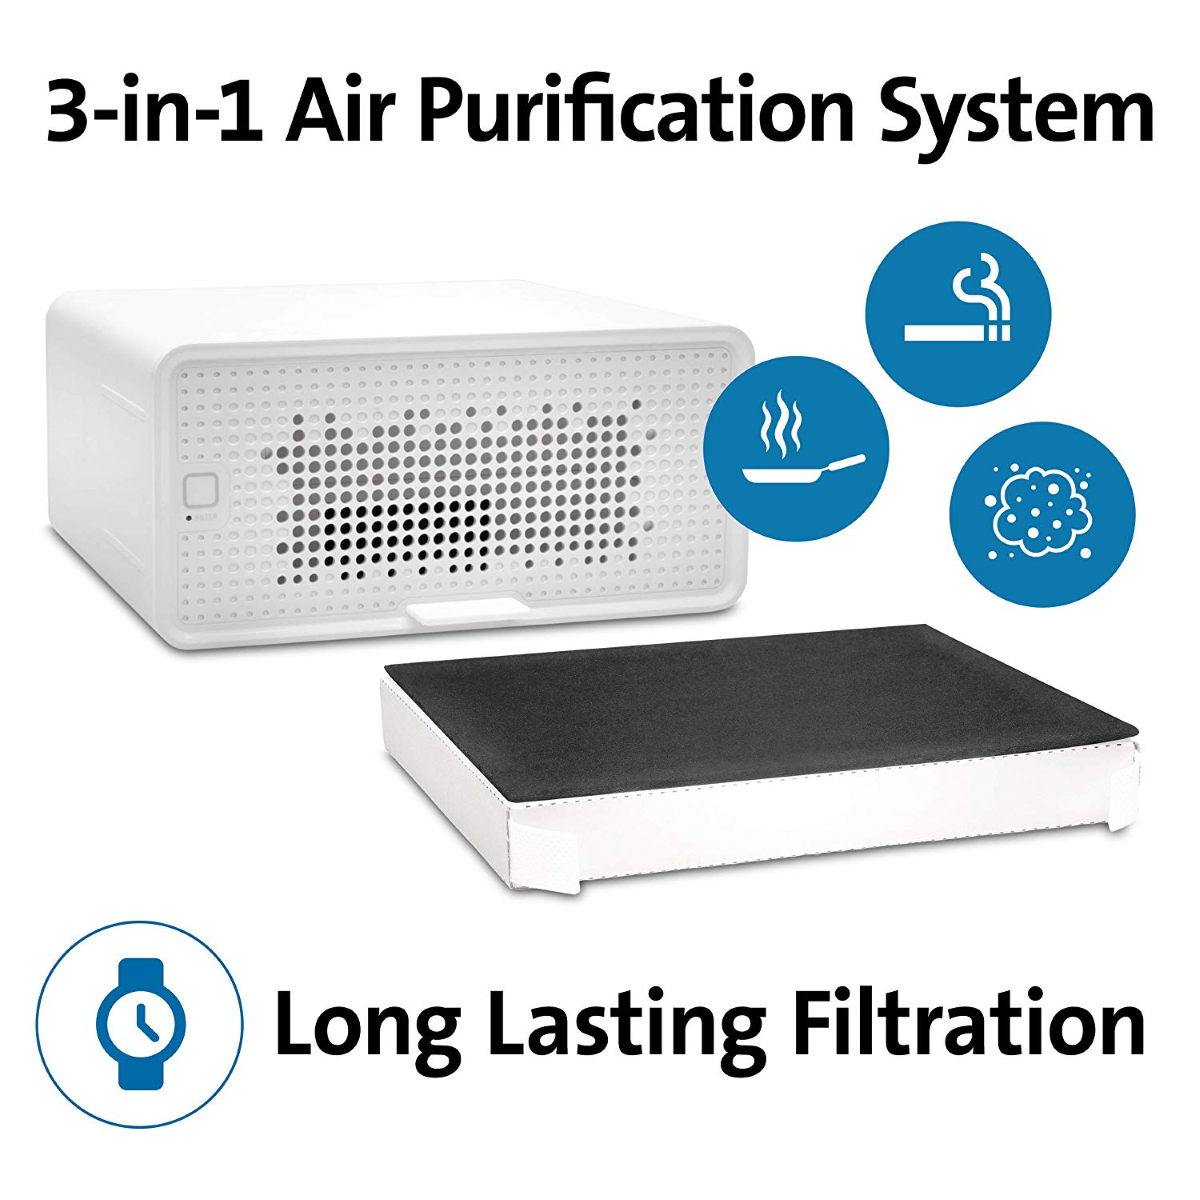 FreshView Air Purifier - 3-in-1 Air Purification System & Long Lasting Filtration